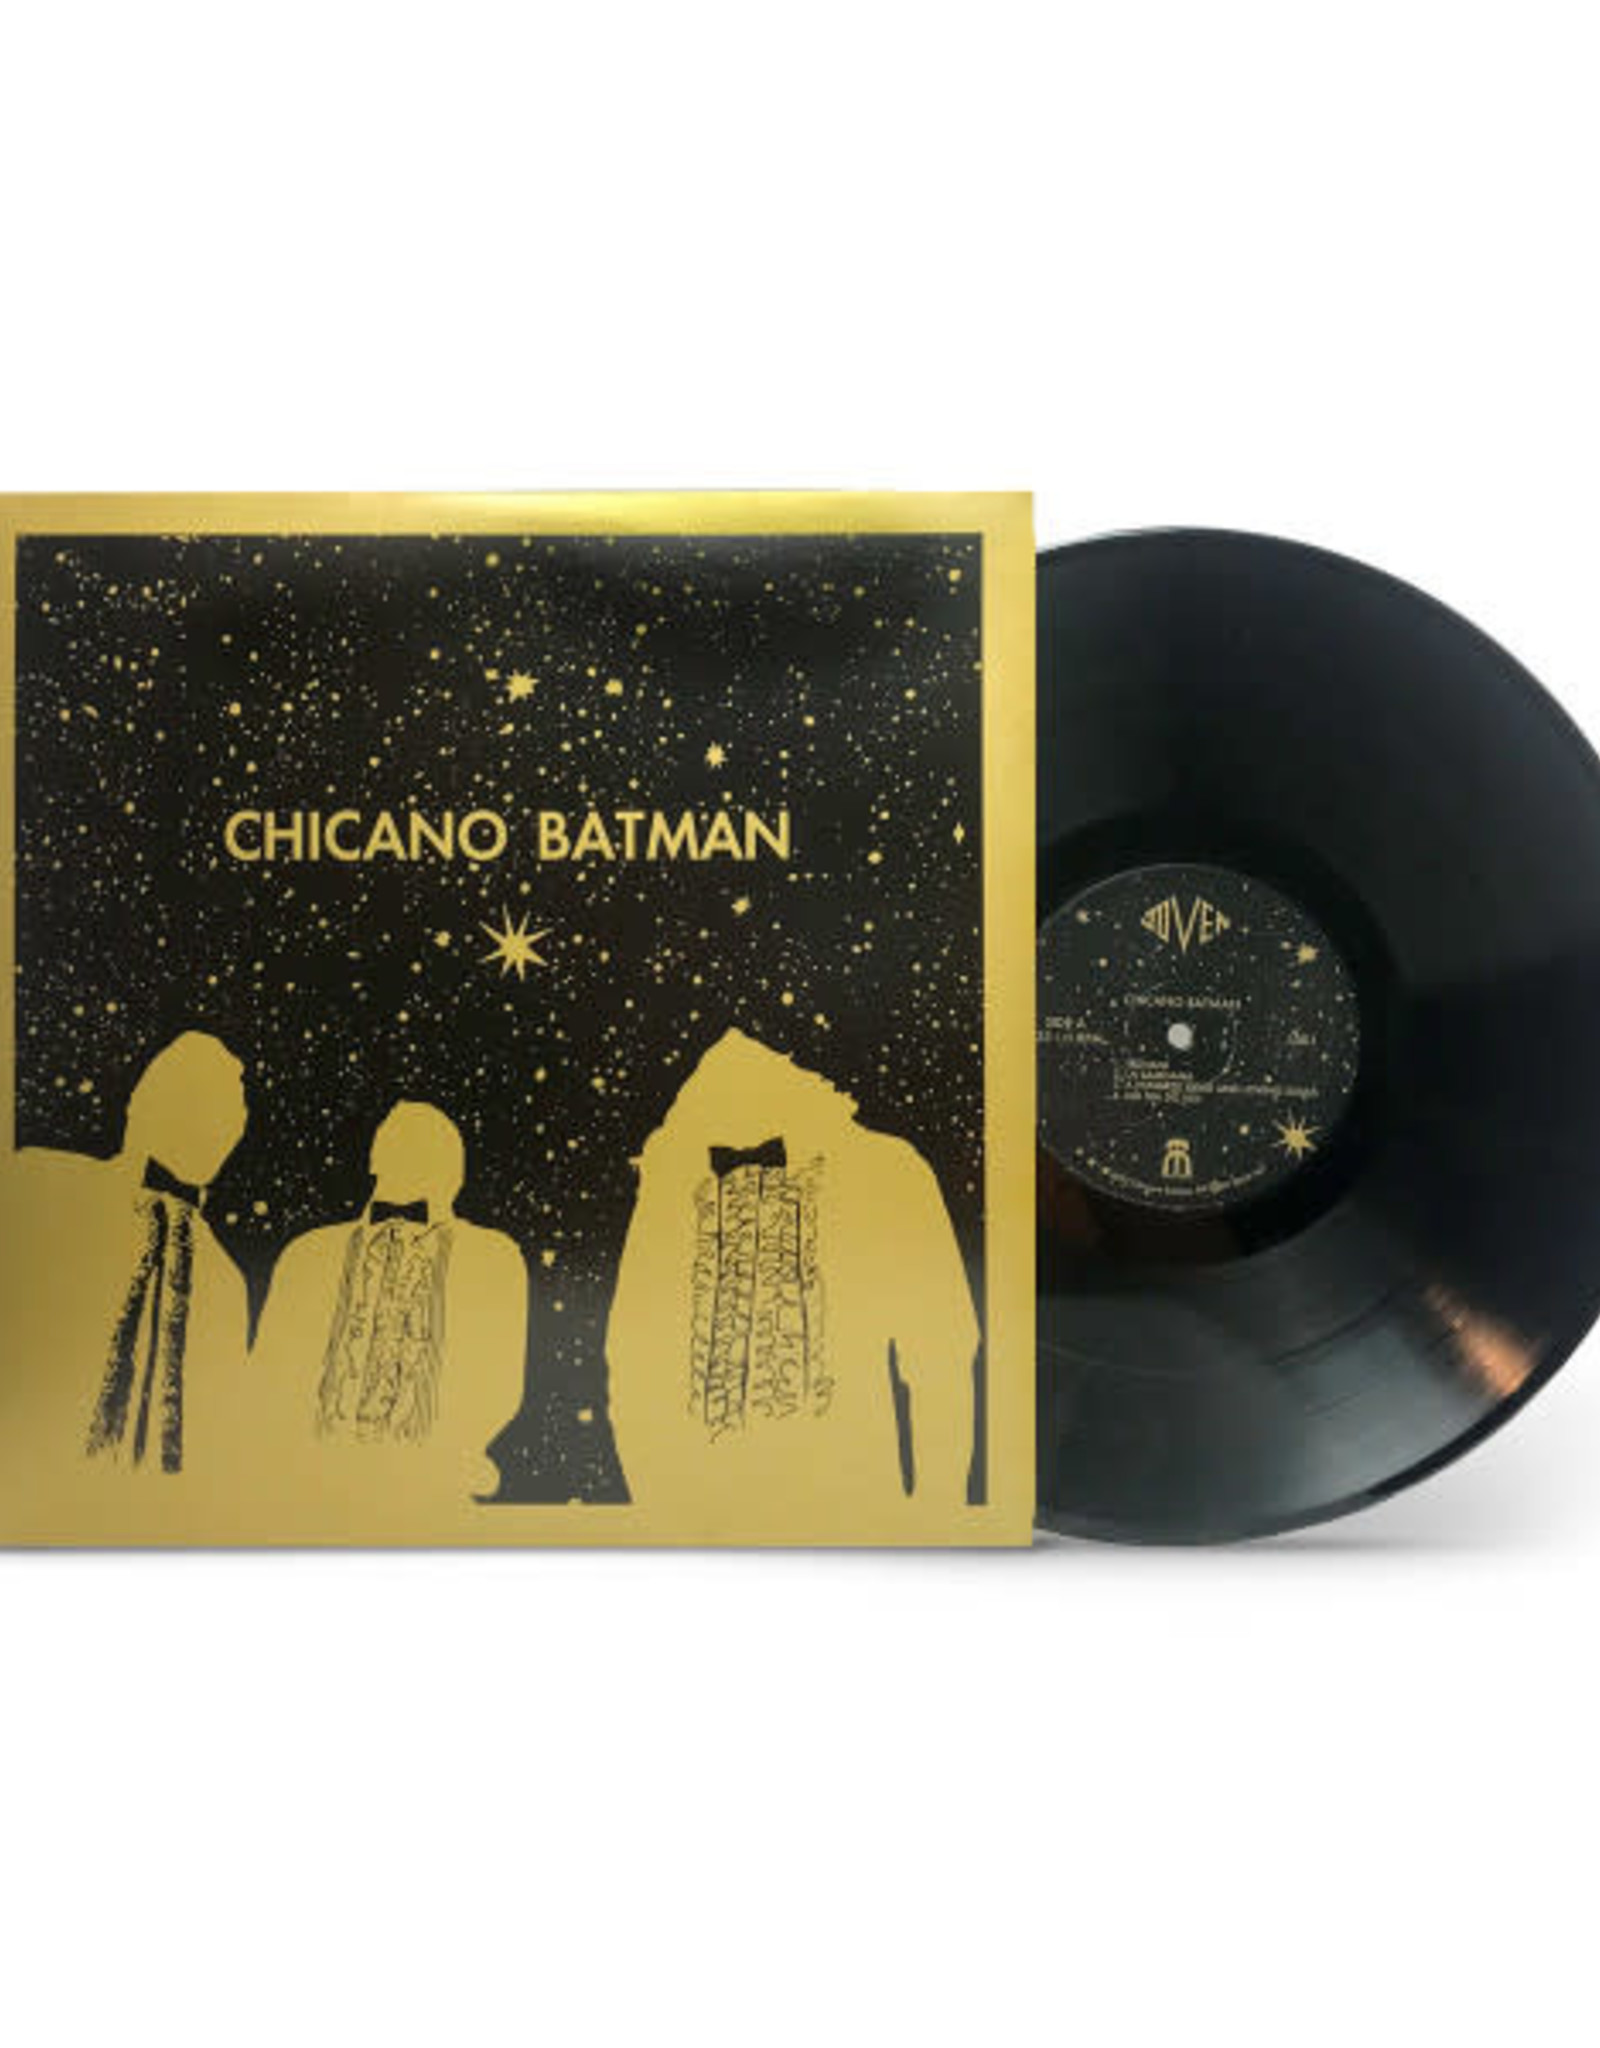 Chicano Batman- Self-Titled Debut Limited-Edition Gold Vinyl